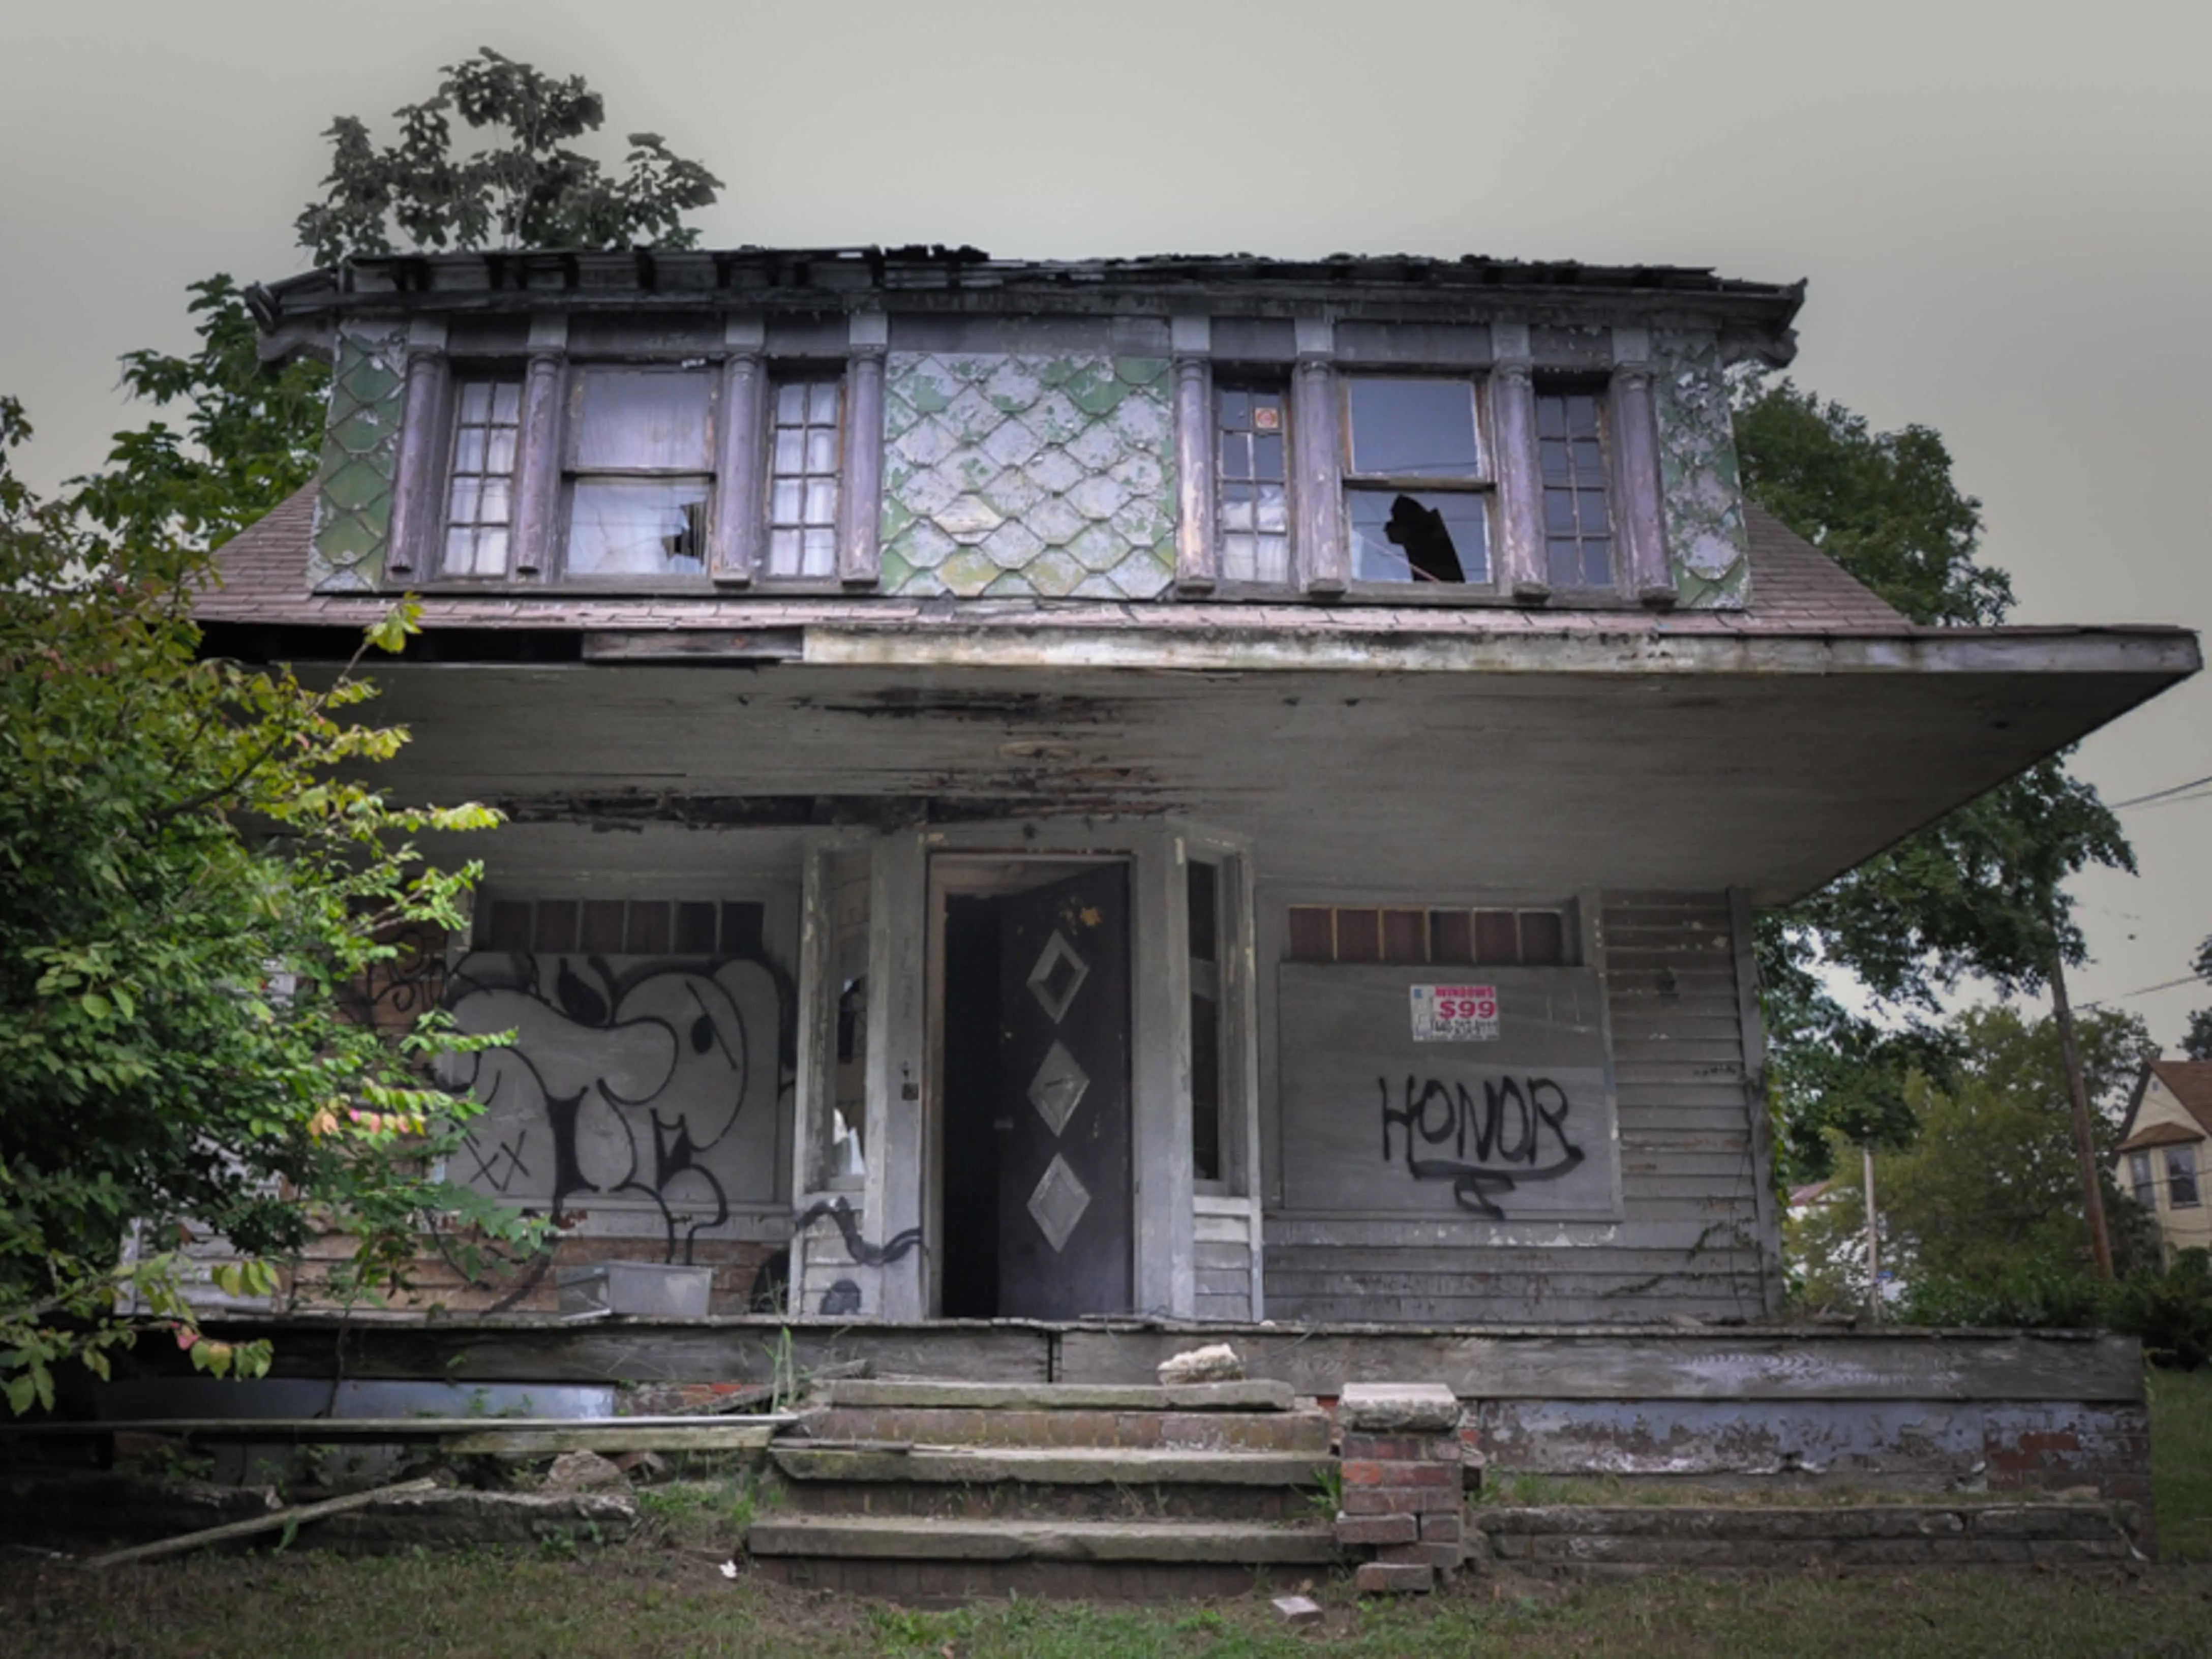 This abandoned East Cleveland, Ohio house where serial Anthony Sowell grew up has been demolished. Before its destruction, however, nearby residents refused to walk on the sidewalk in front of the home because they said ghastly noises emanated from its creepy exterior.